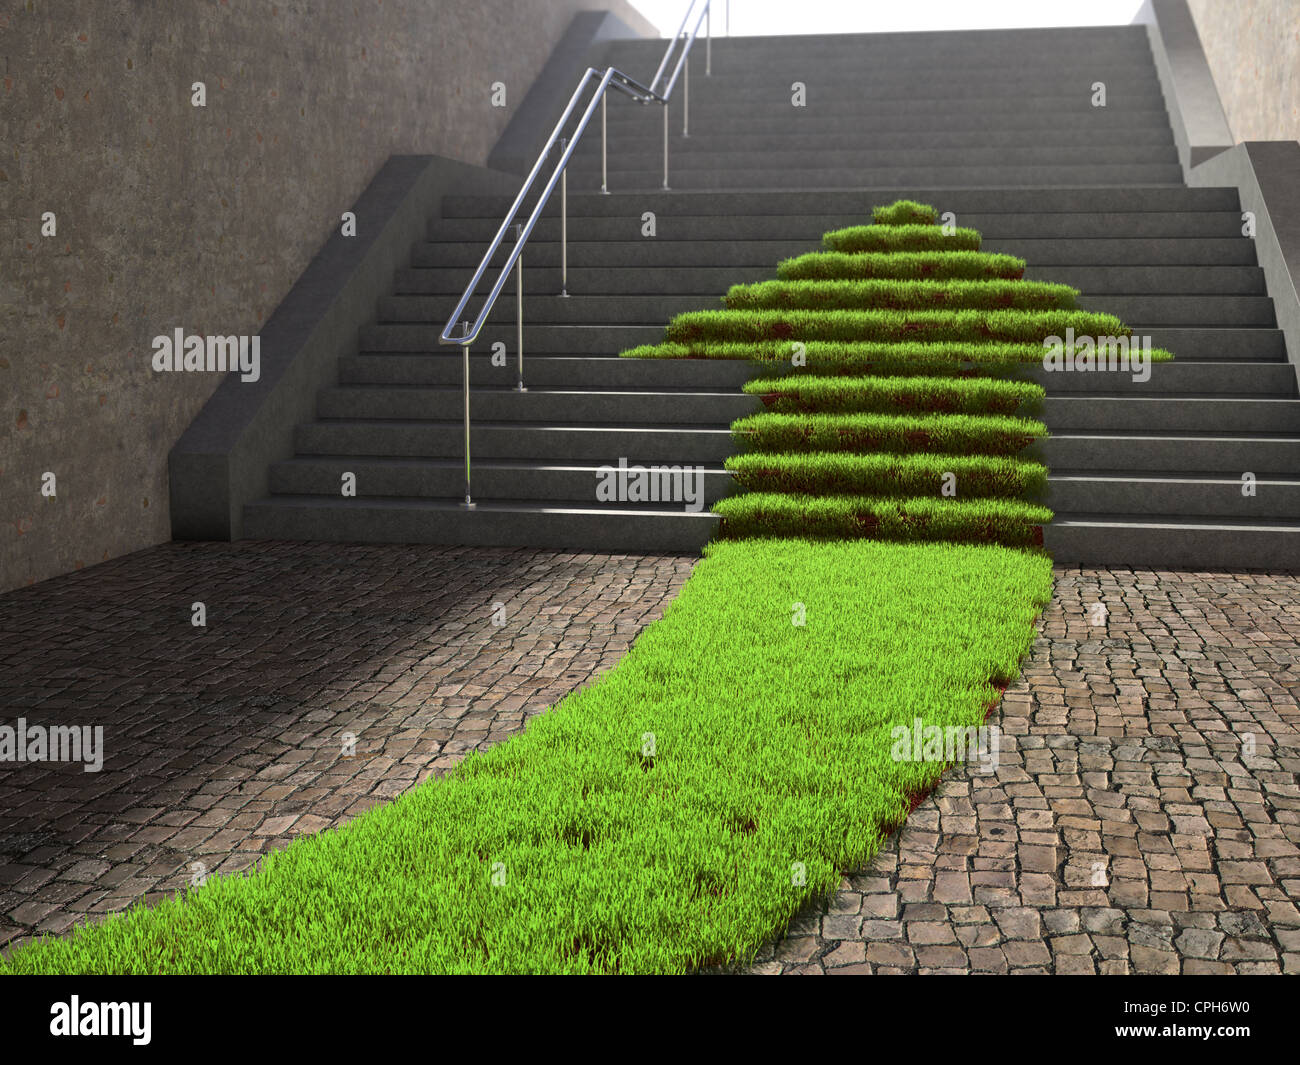 Urban scene with arrow shaped grass patch growing on a stairway - Stock Image